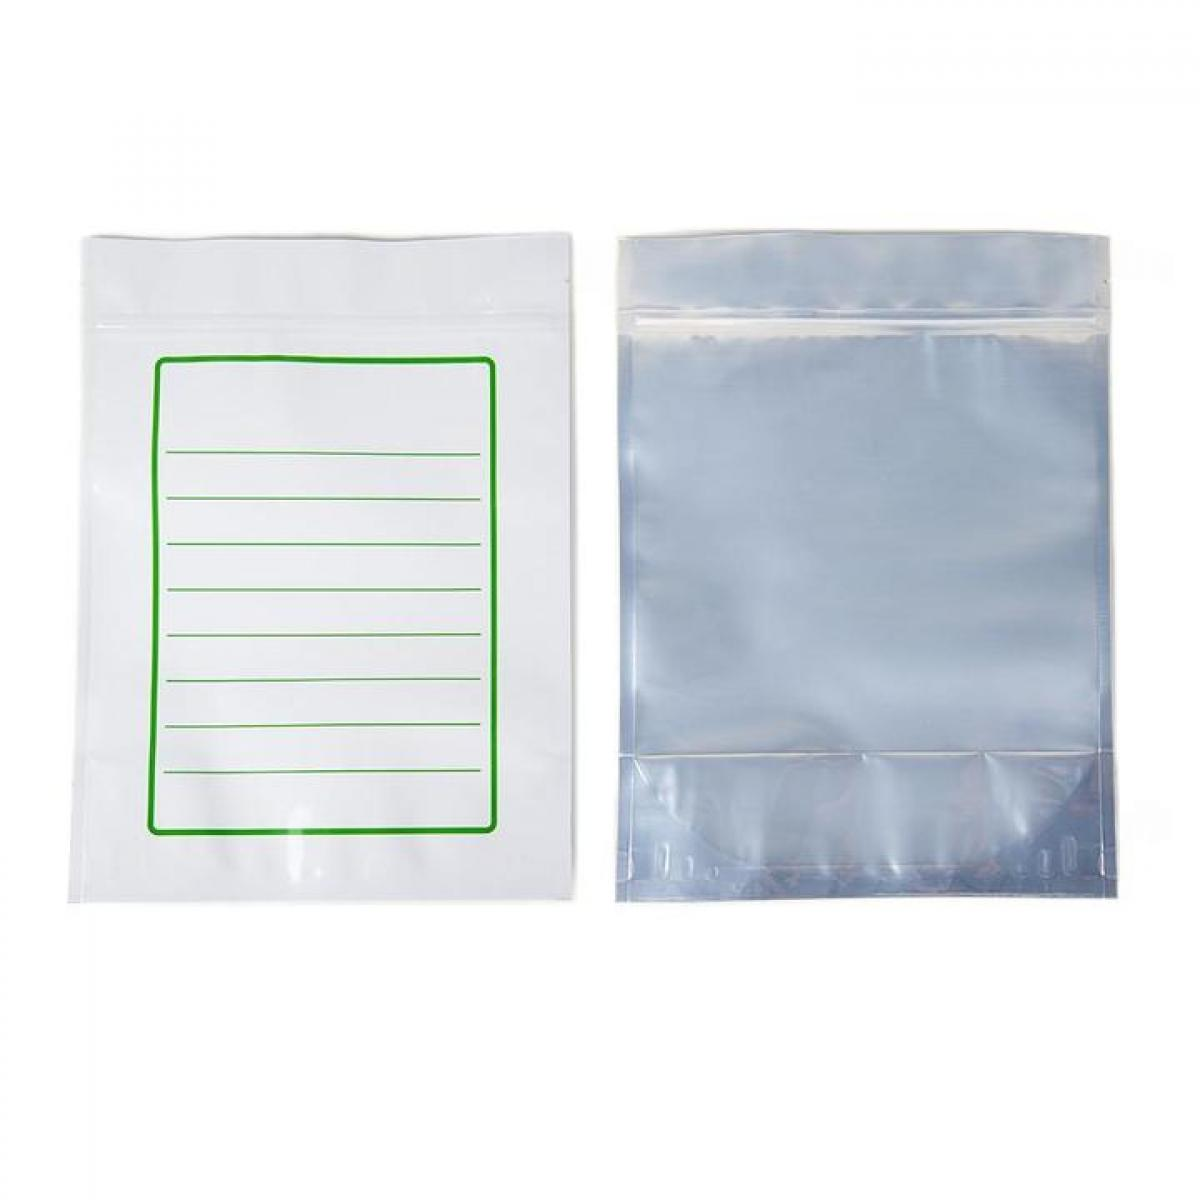 50x Mylar Bags (1/2lb Size) Loud Lock Compliant Quality